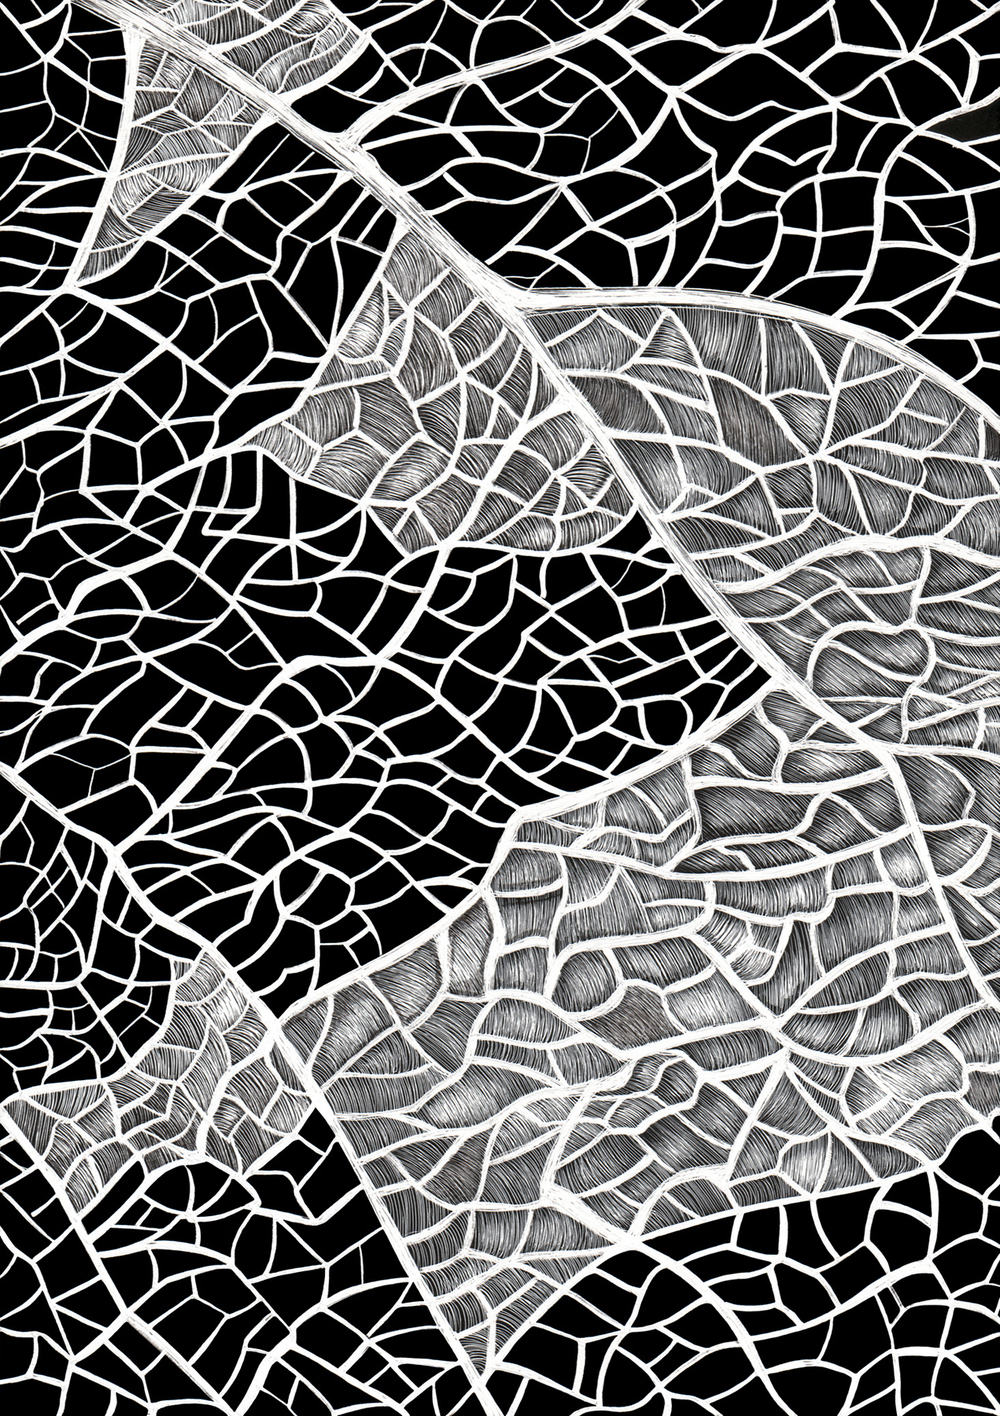 Detail of a Grape Leaf by Lisa Goesling